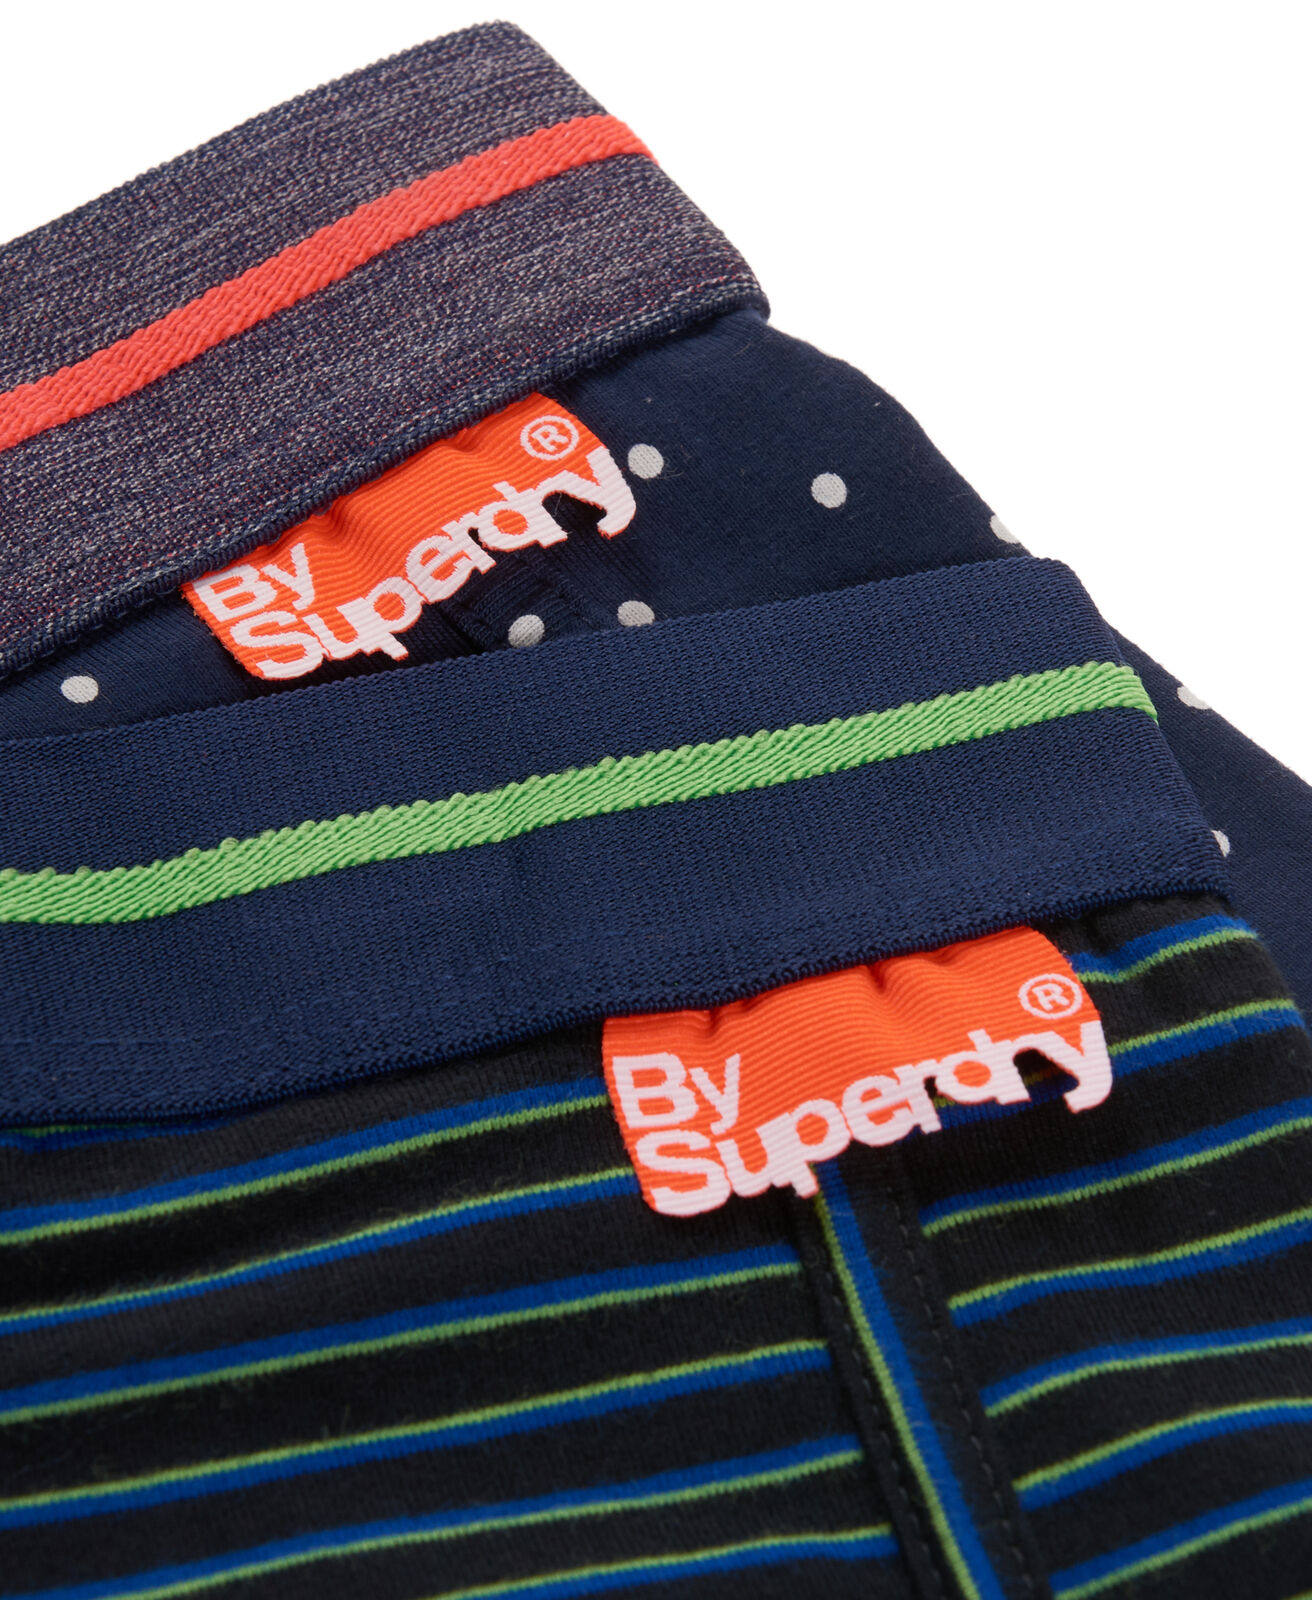 Mens-Superdry-Sport-Boxers-Double-Pack-Newport-Stripe-Green thumbnail 6